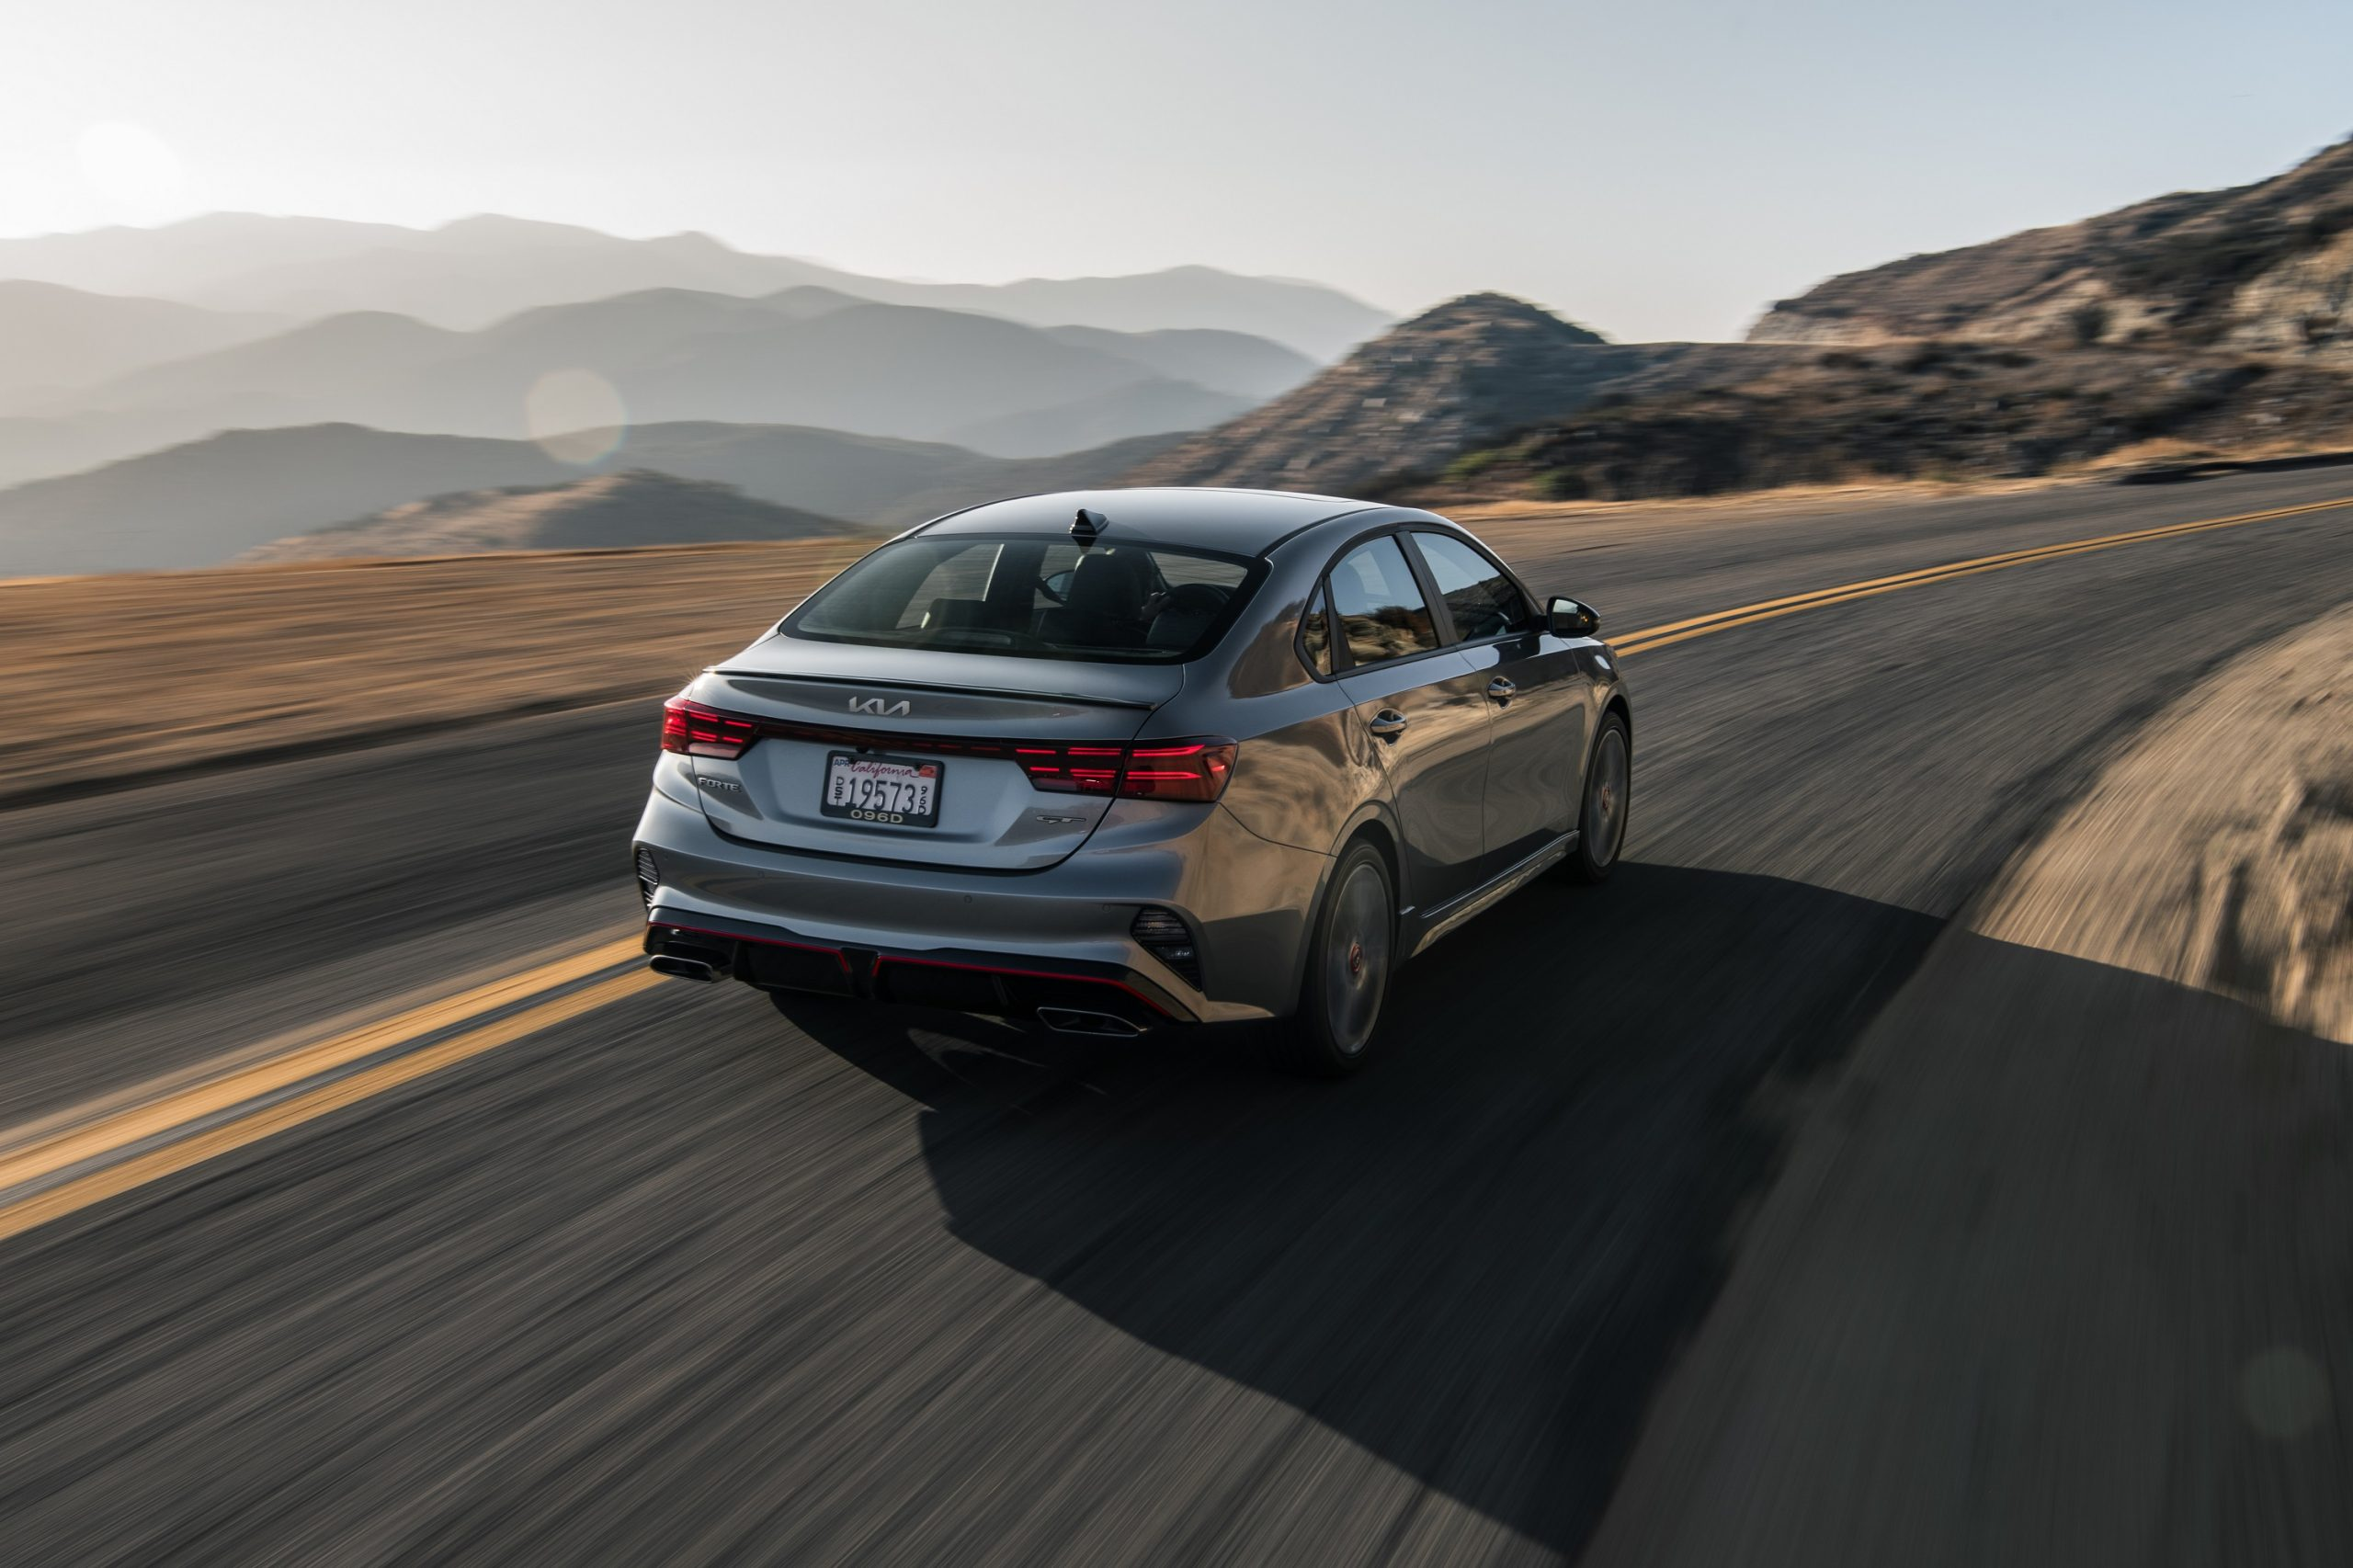 A silver Kia Forte GT shot from the rear on a canyon road